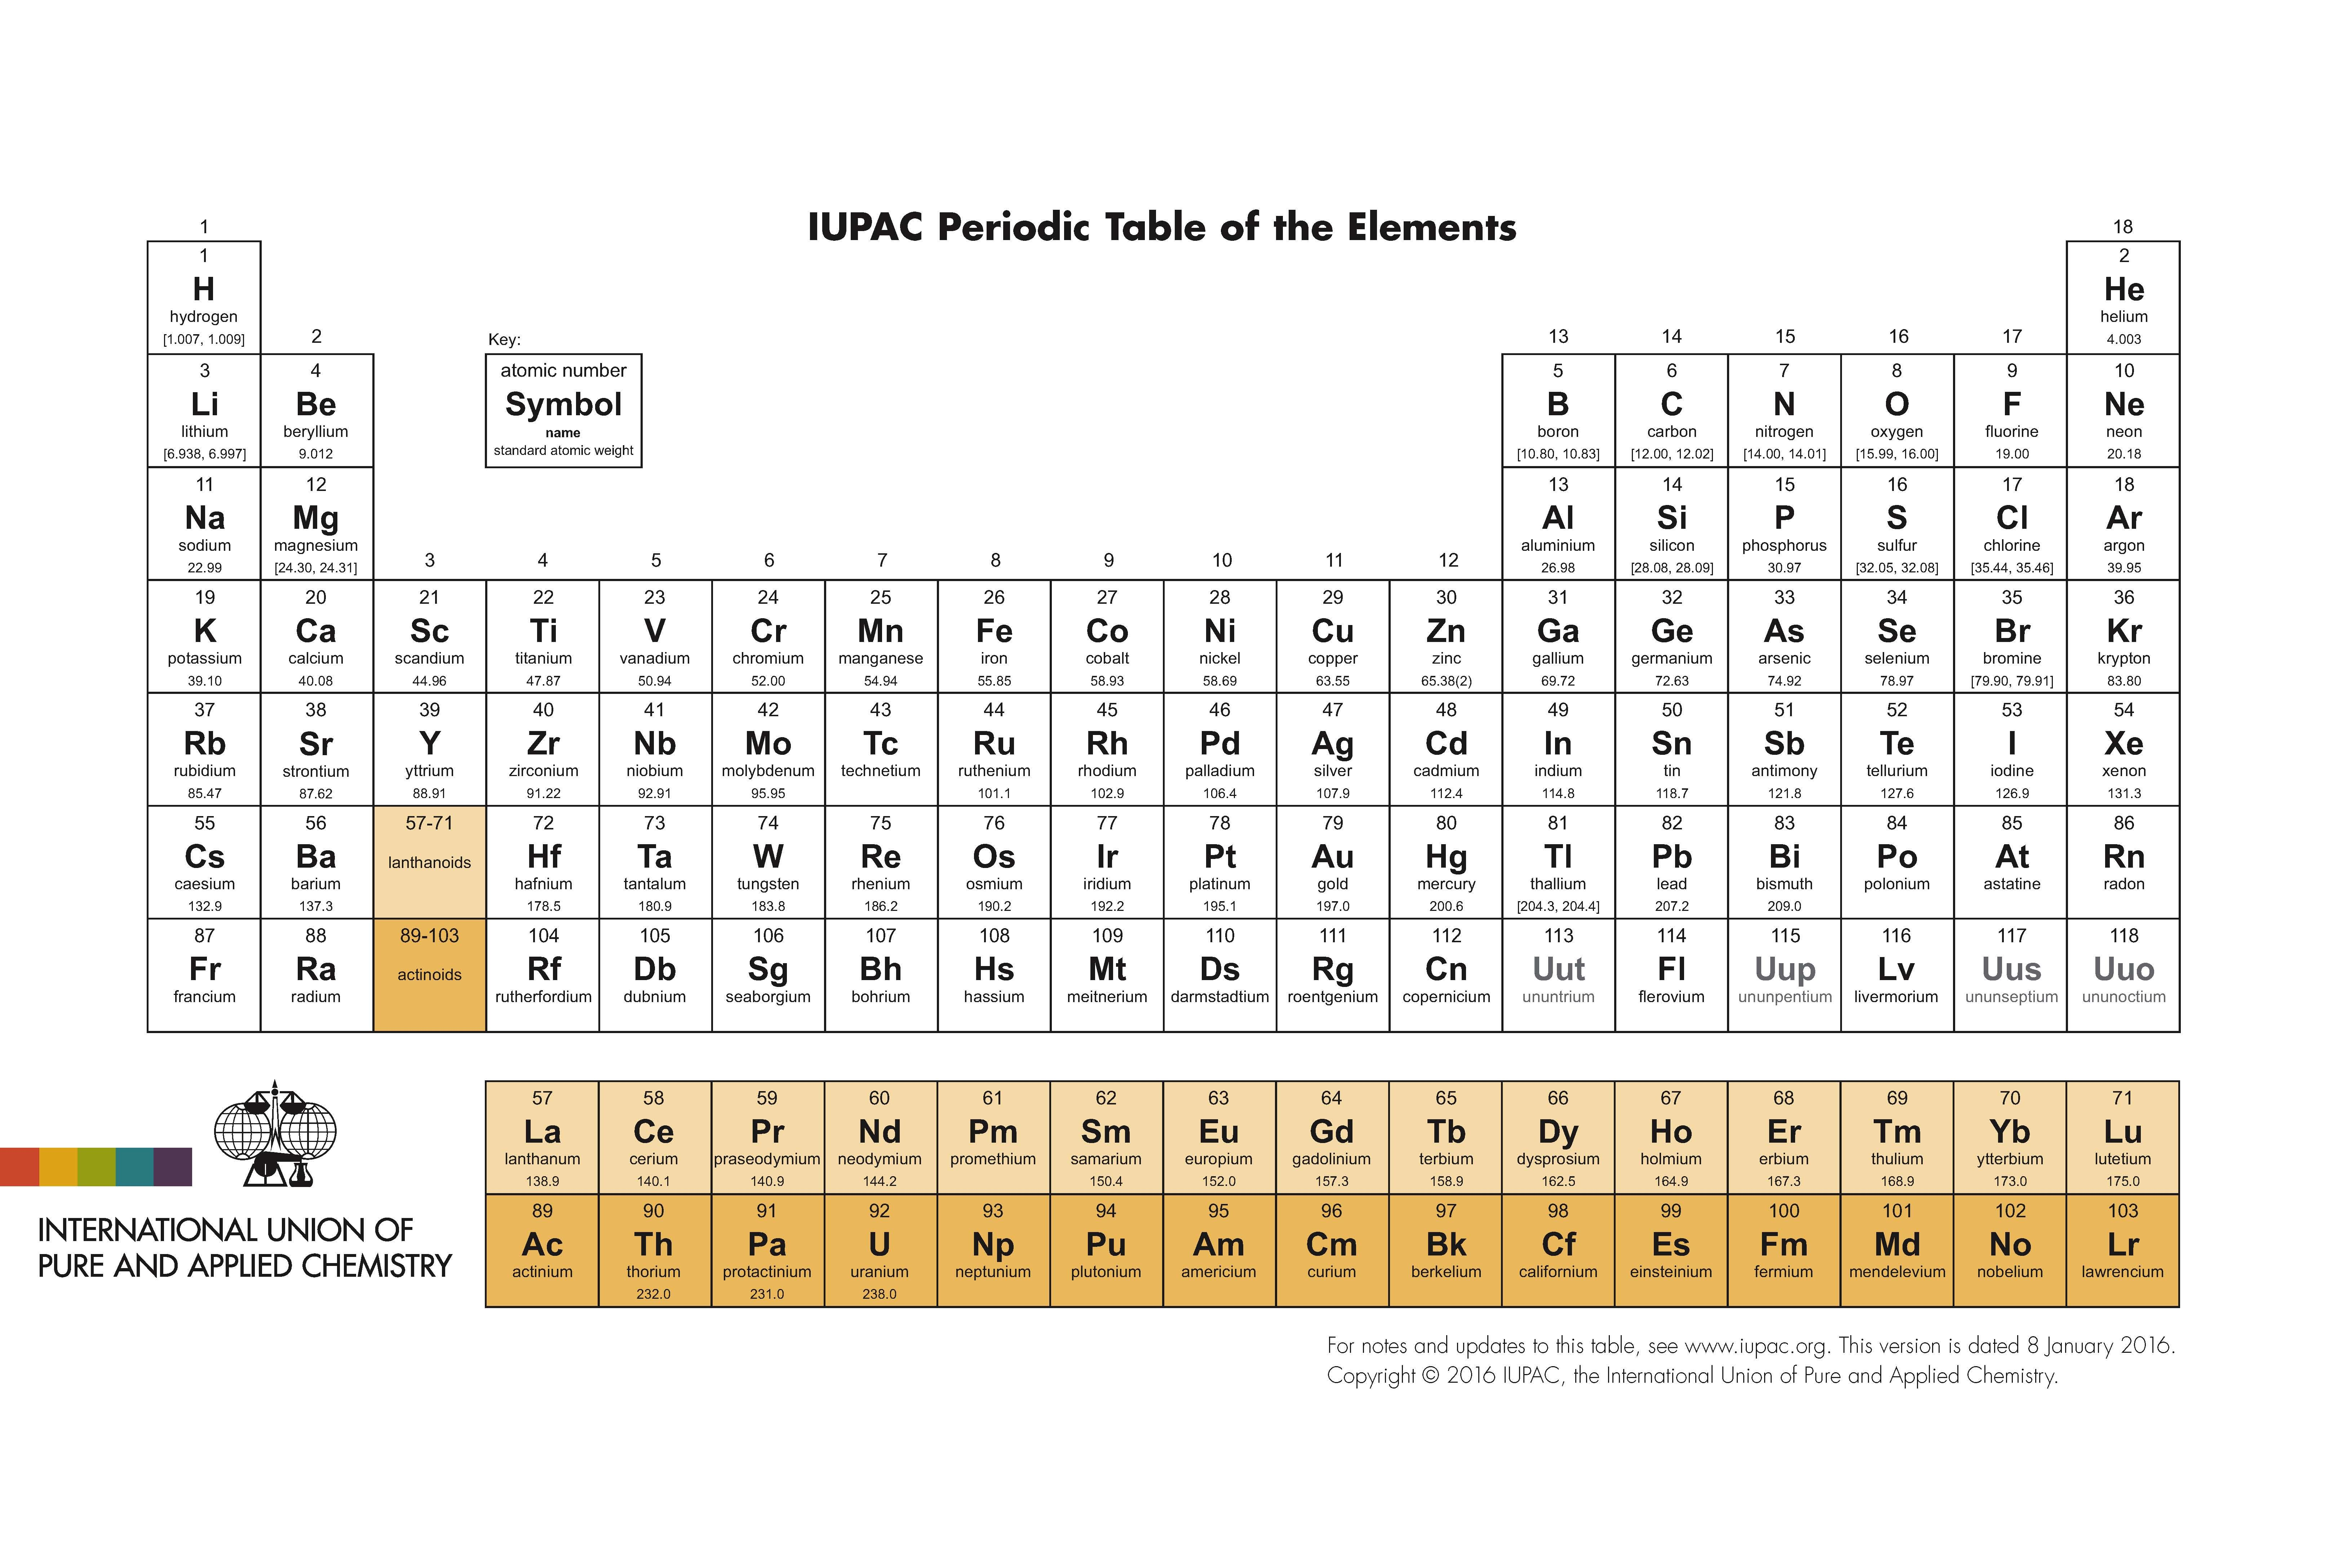 Periodic table of elements iupac biology pinterest periodic periodic table of elements iupac urtaz Images